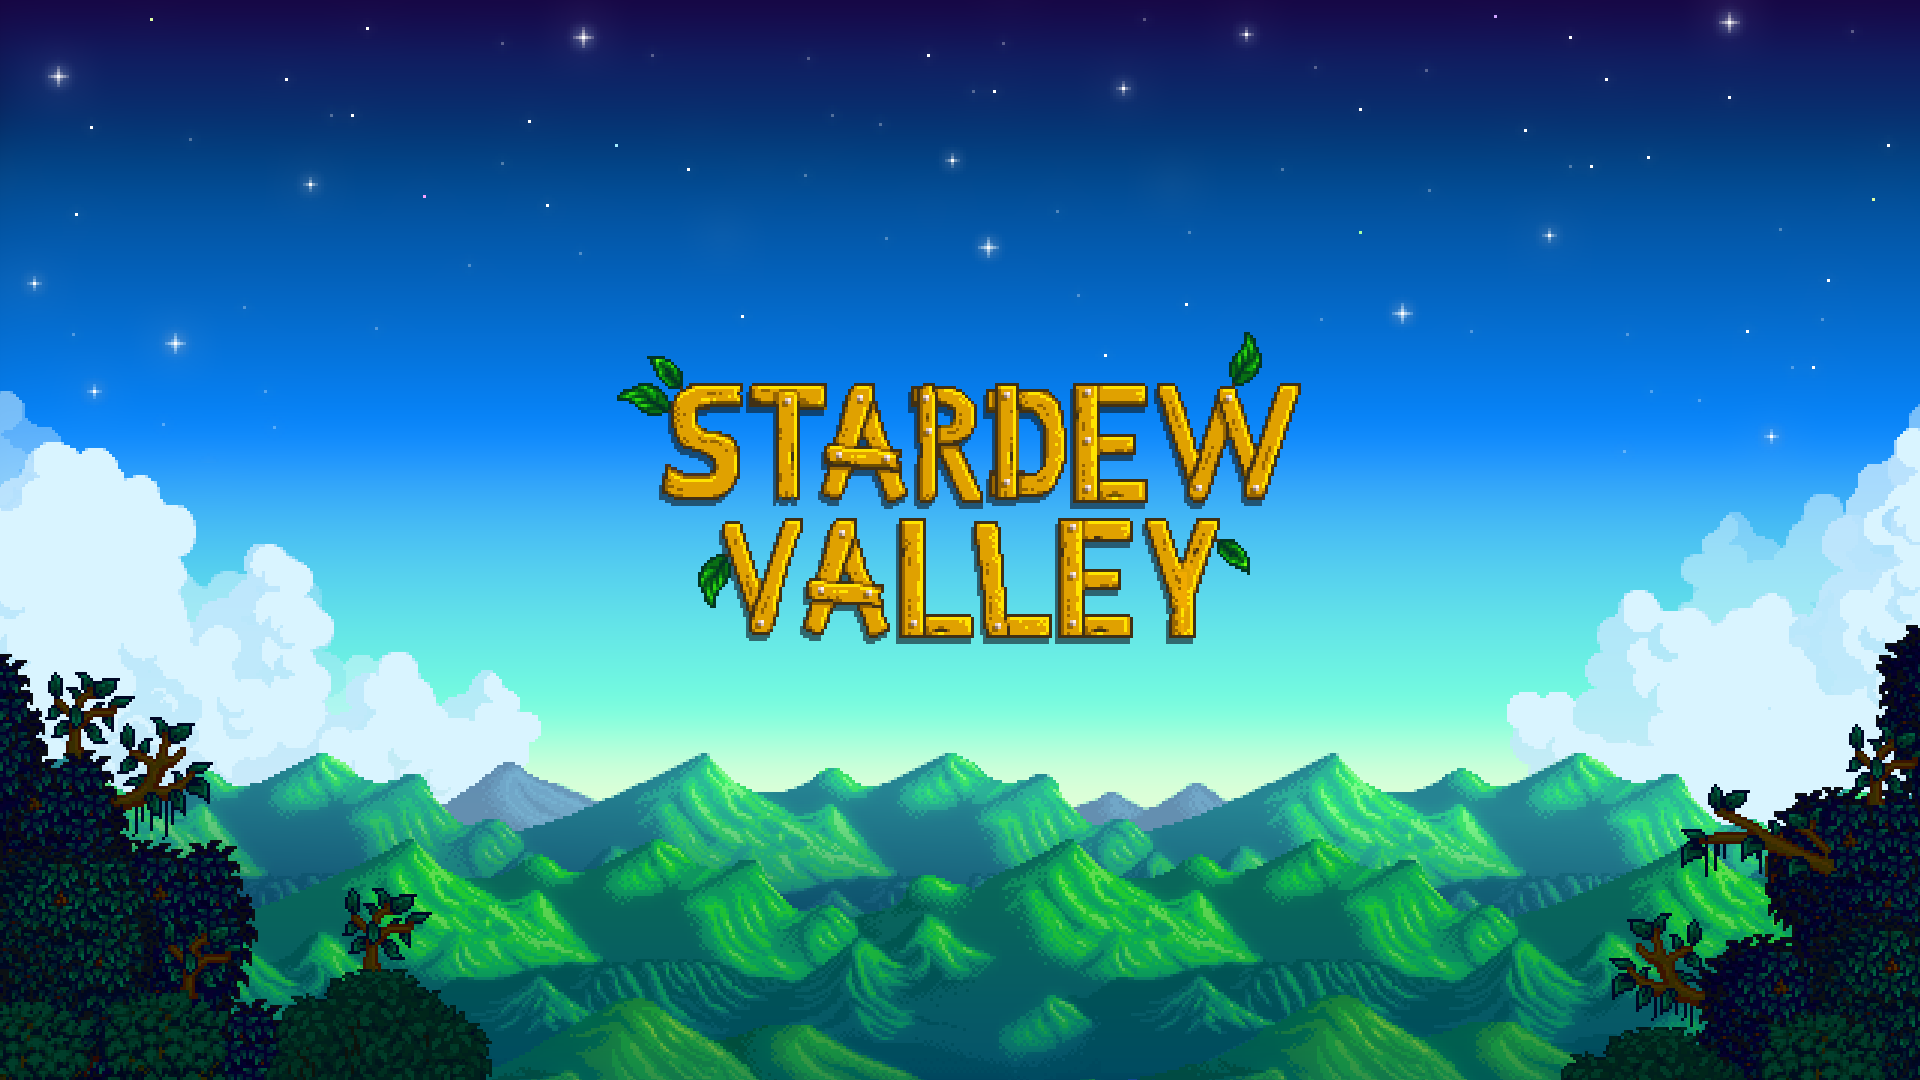 Stardew Valley Wallpapers - Top Free